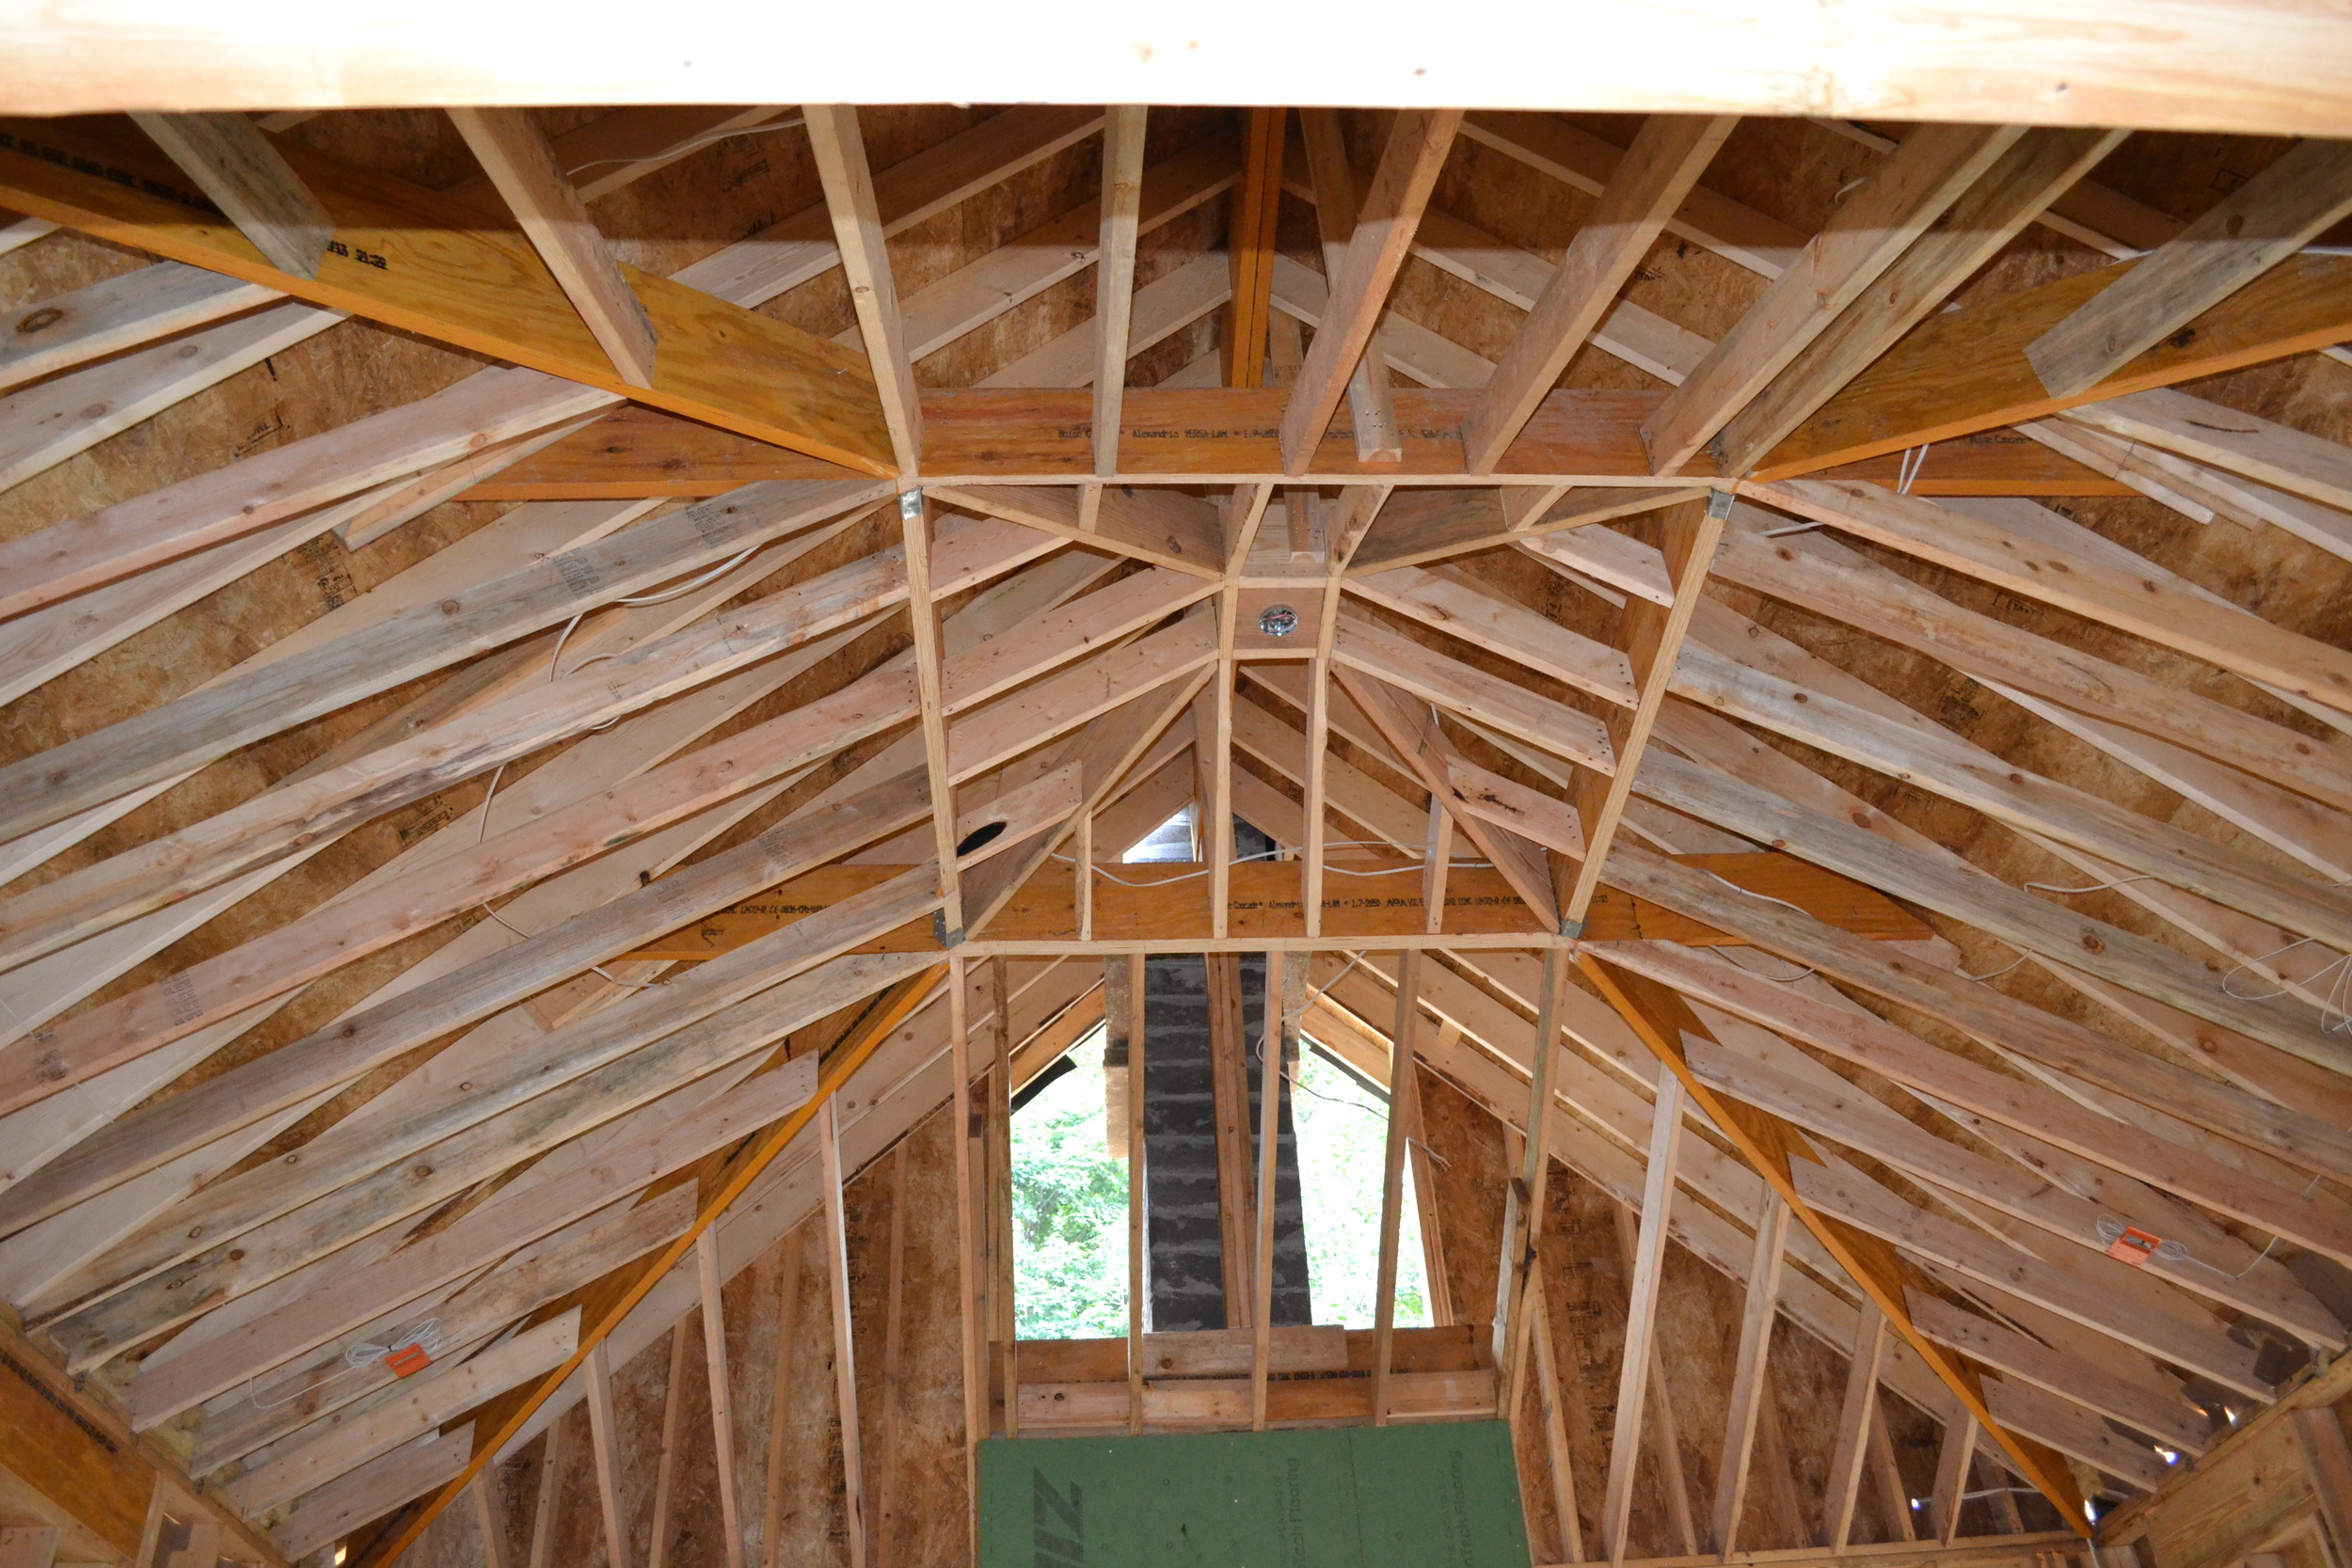 here's a great vaulted ceiling that is in the framing stage